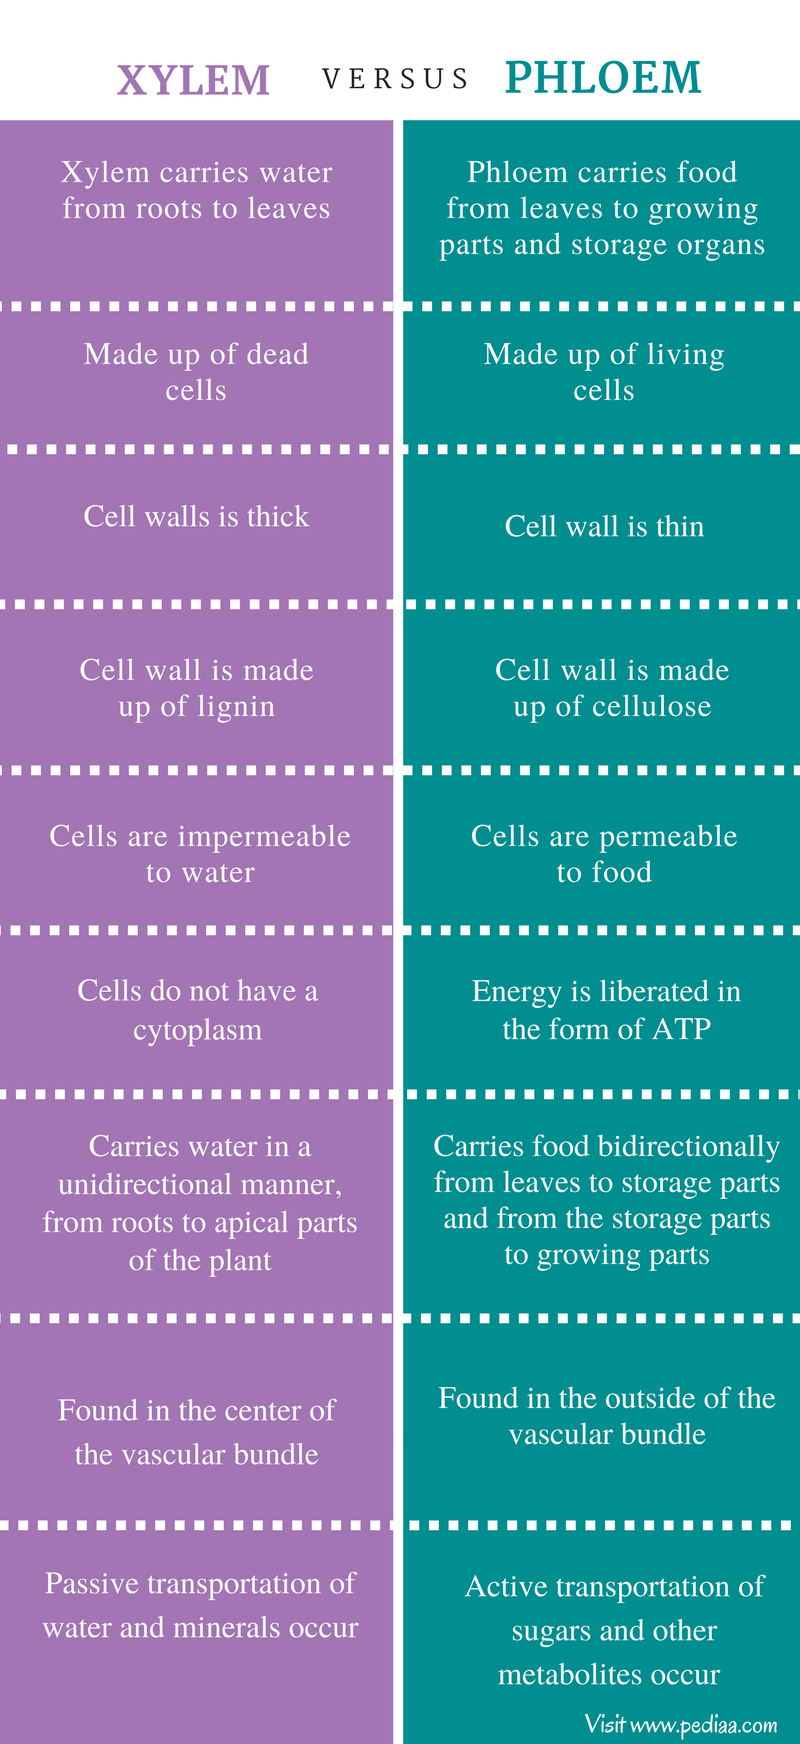 Difference Between Xylem and Phloem - Comparison Summary ...